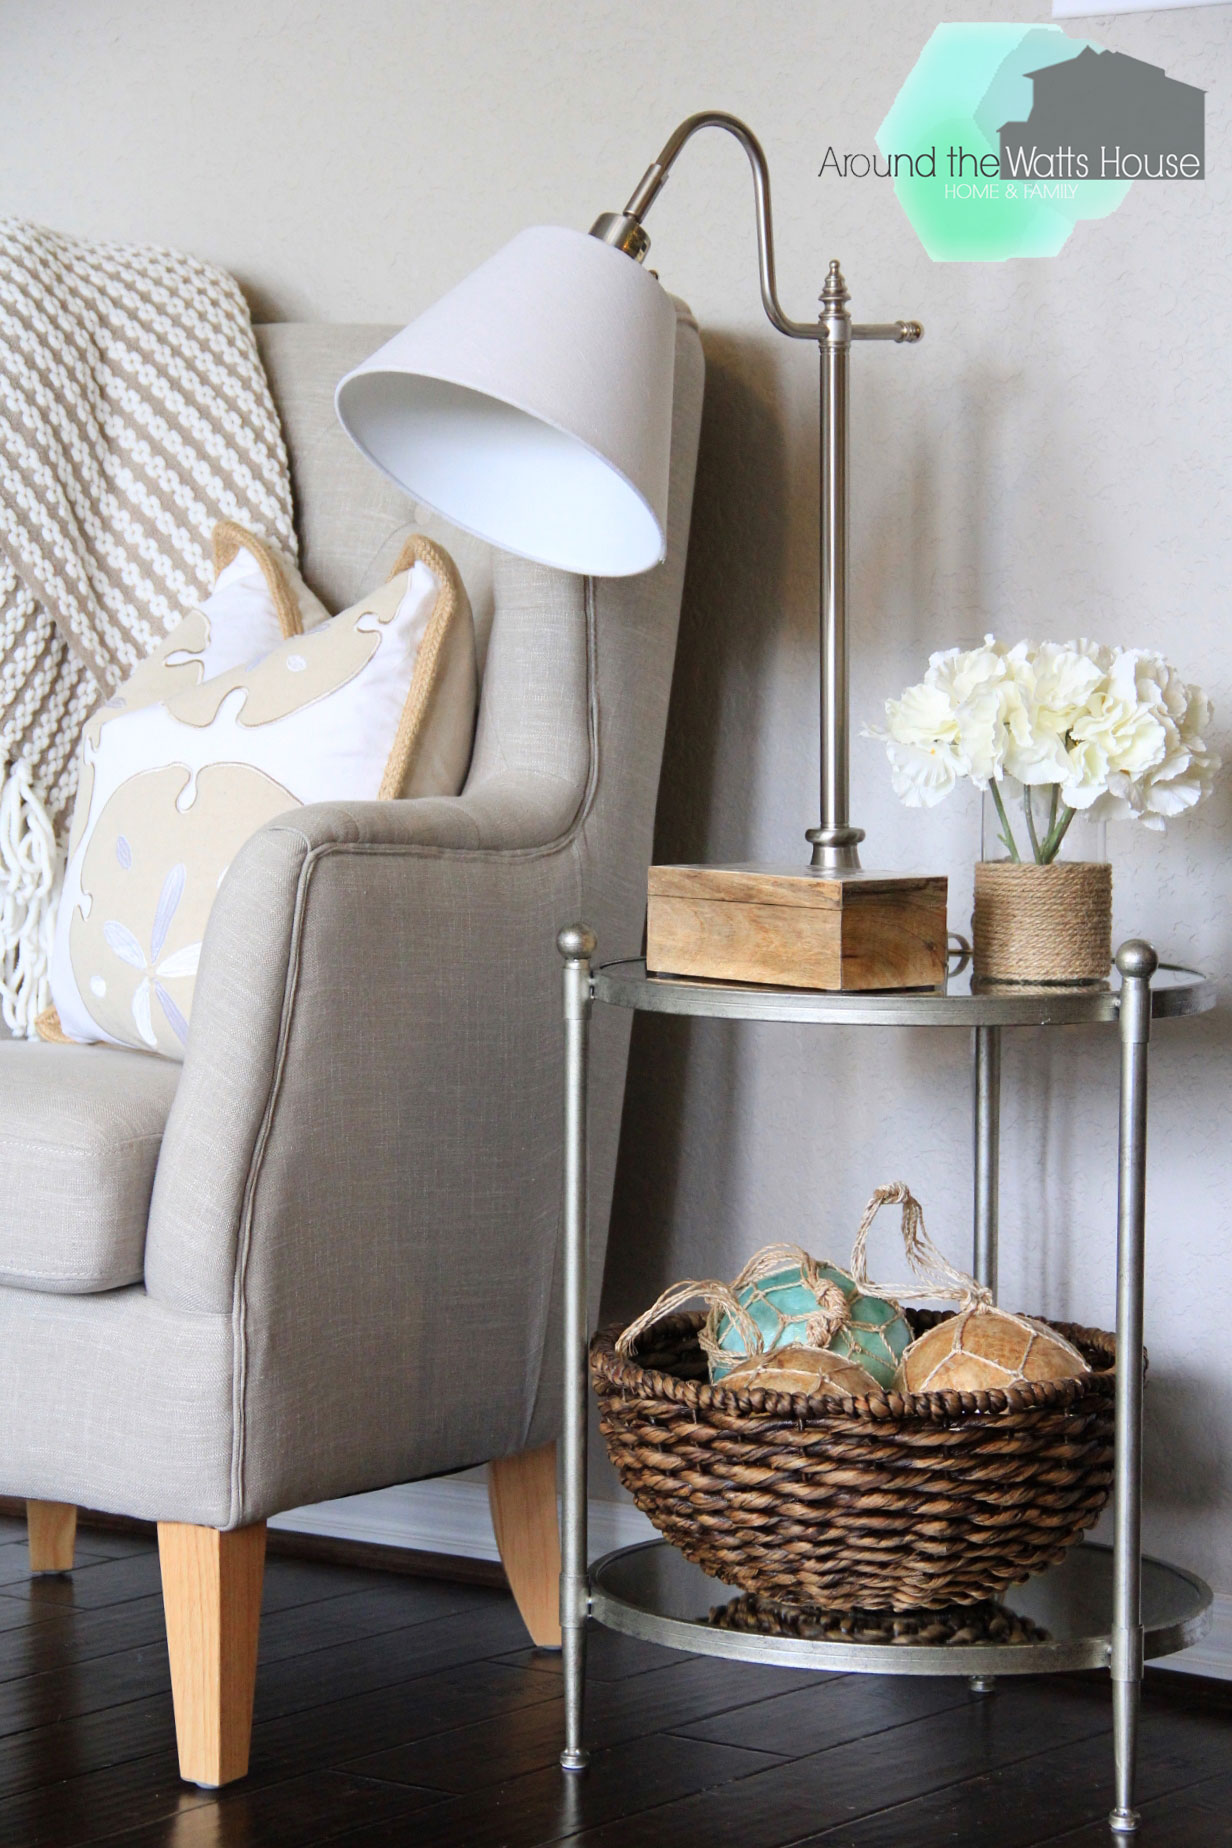 Here comes the Summer Décor!